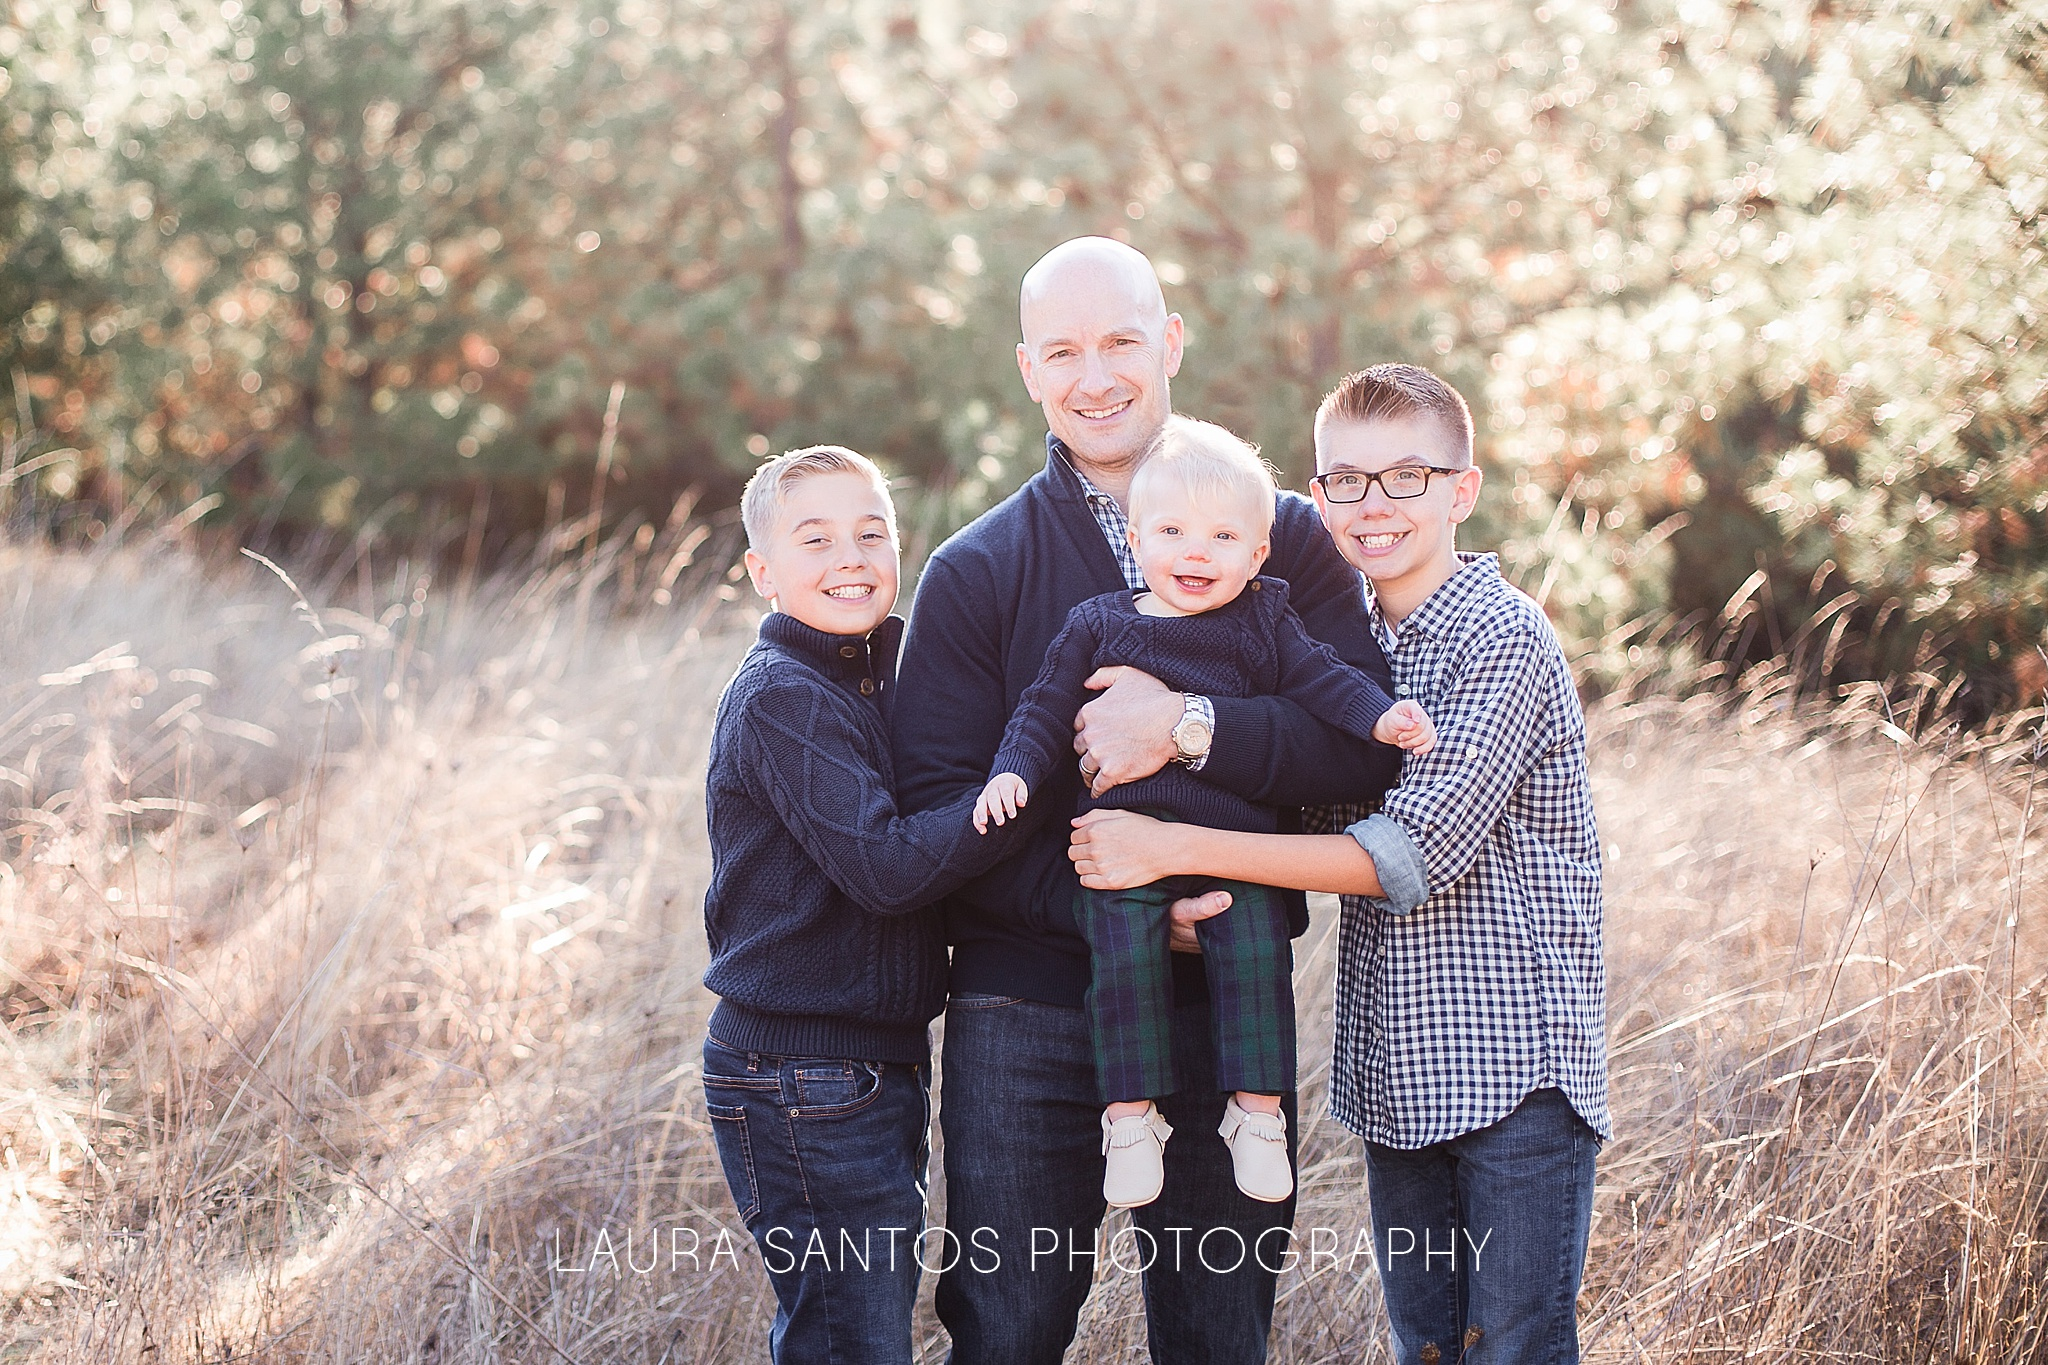 Laura Santos Photography Portland Oregon Family Photographer_0622.jpg